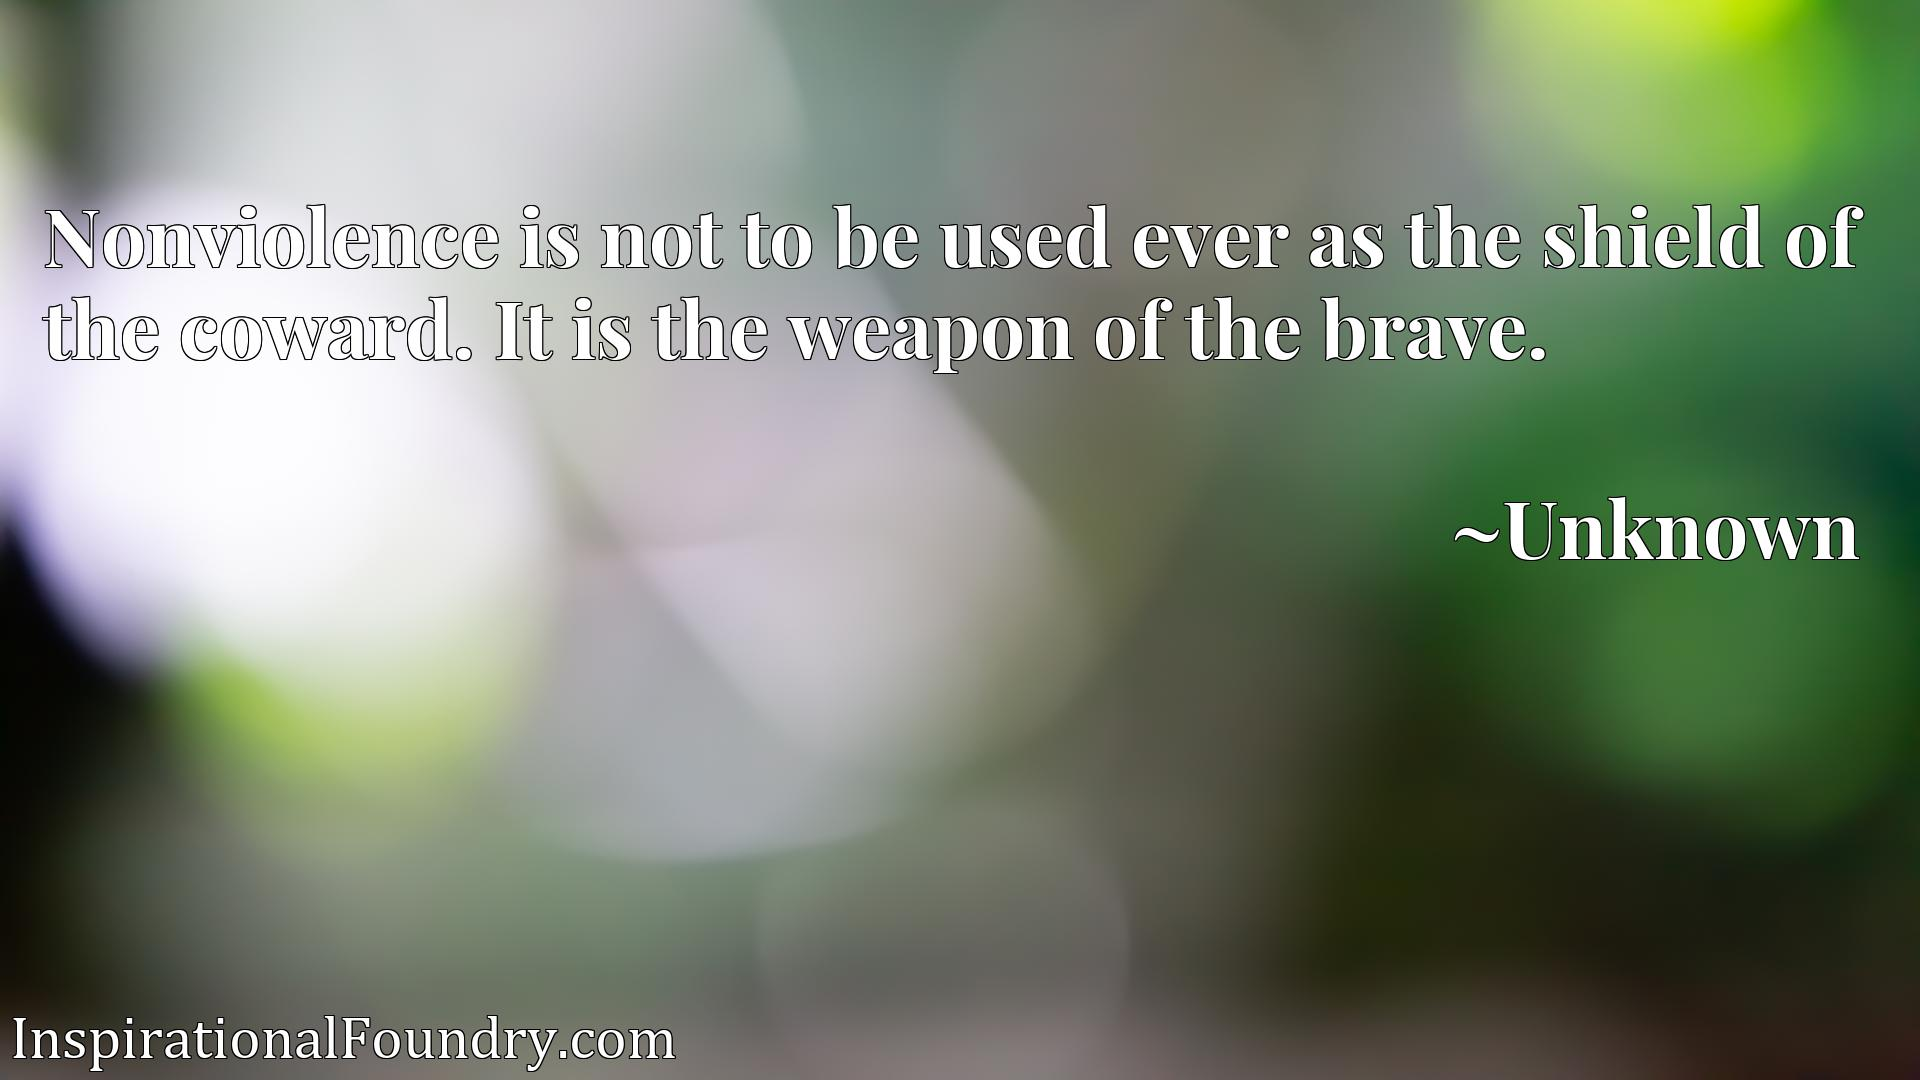 Quote Picture :Nonviolence is not to be used ever as the shield of the coward. It is the weapon of the brave.